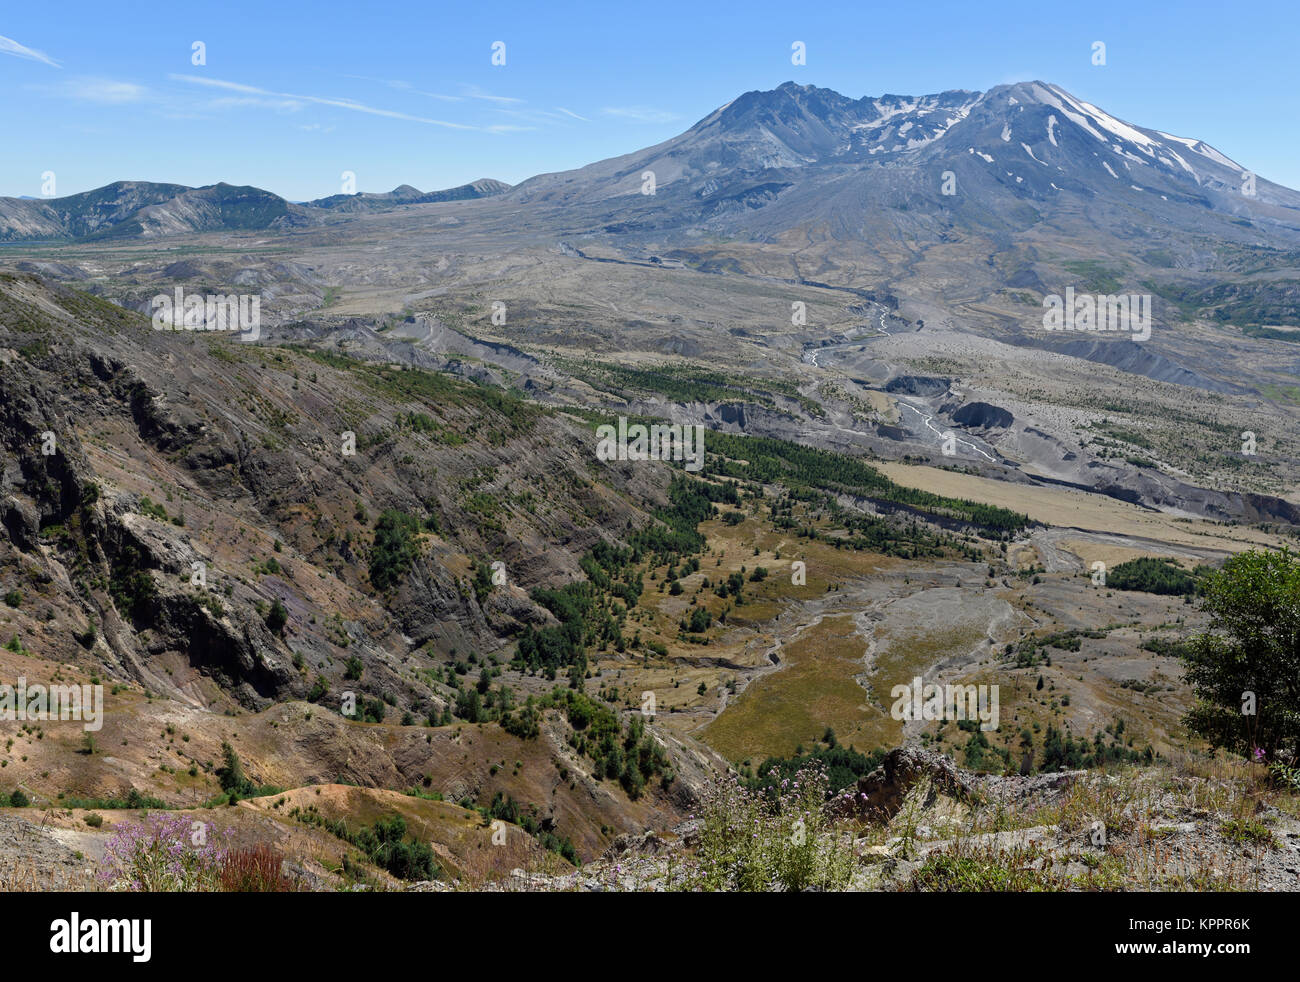 Mount St. Helens volcano in Washington State, USA - Stock Image